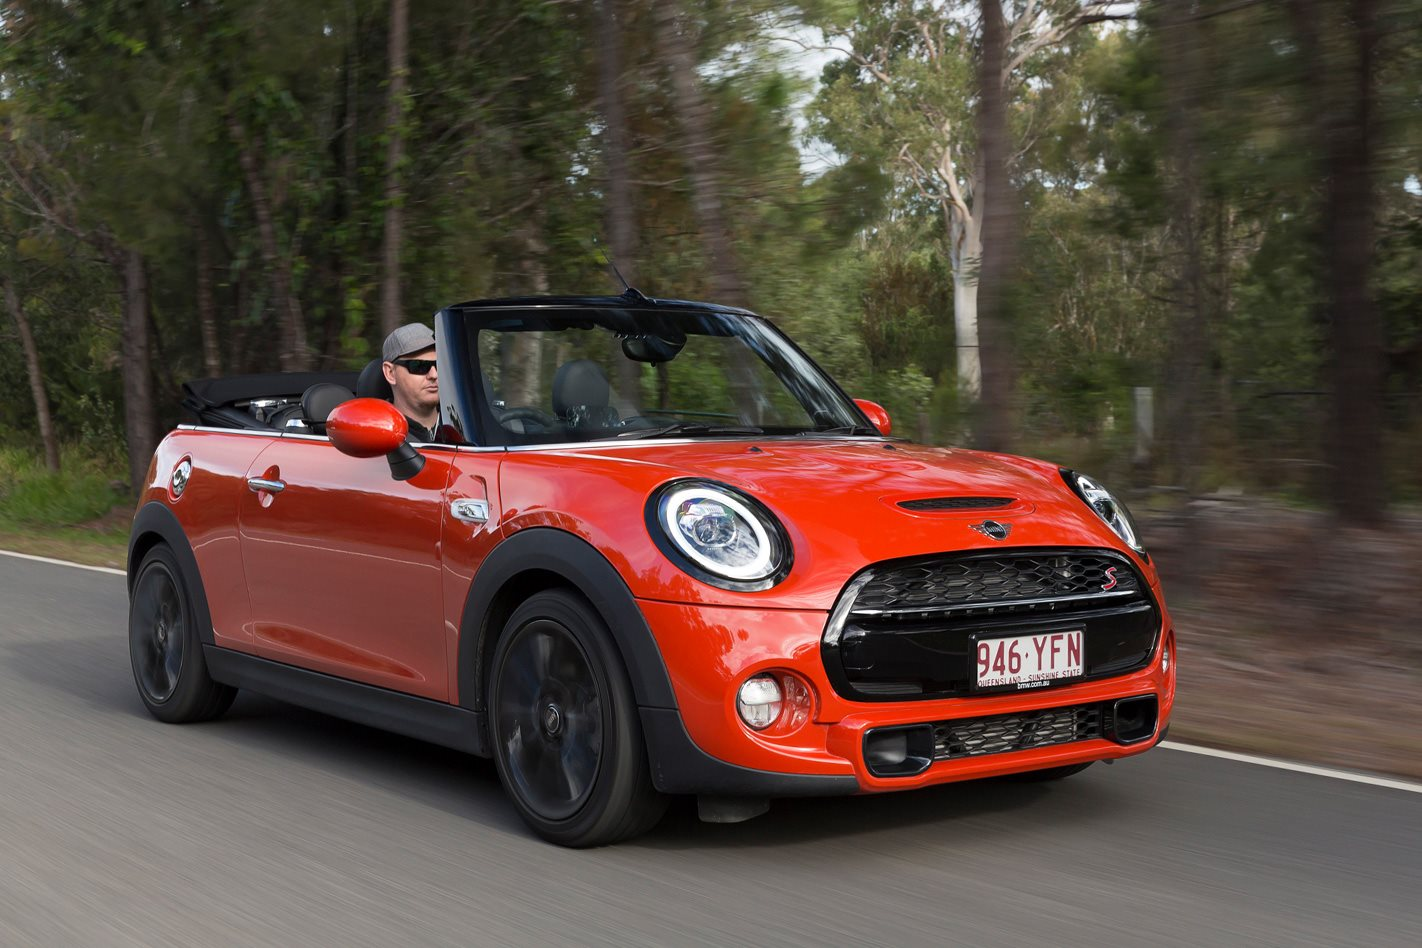 2018 Mini Cooper S Cabriolet Quick Review